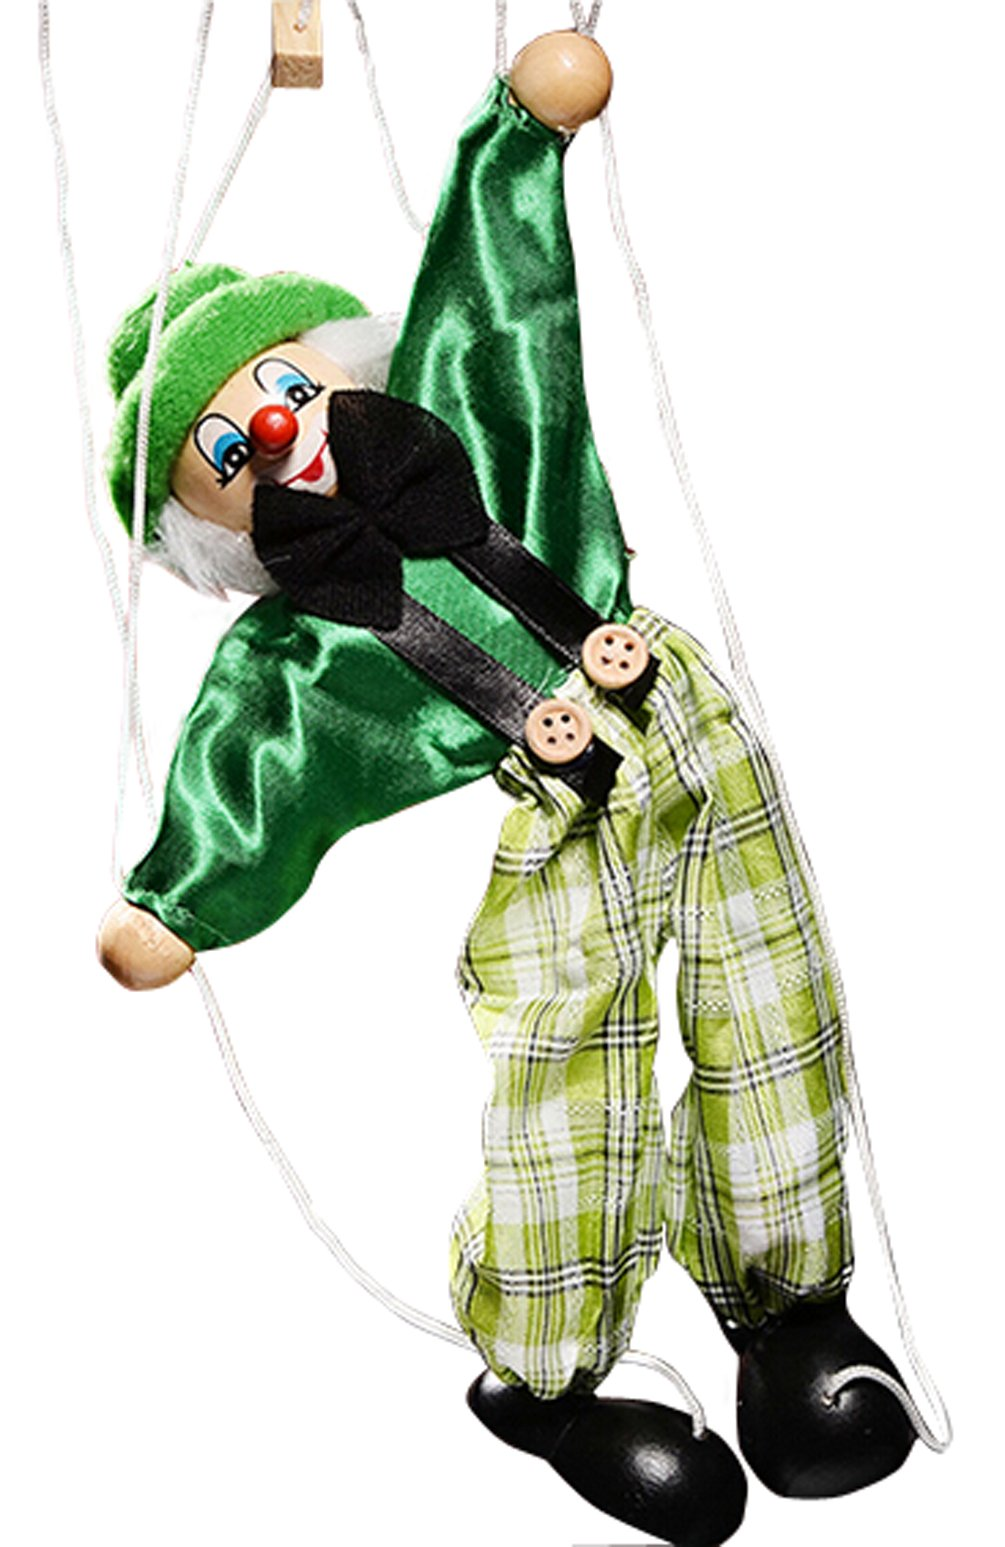 Children's manual Educational Toys Cute Clown Puppet Doll Toy(green)